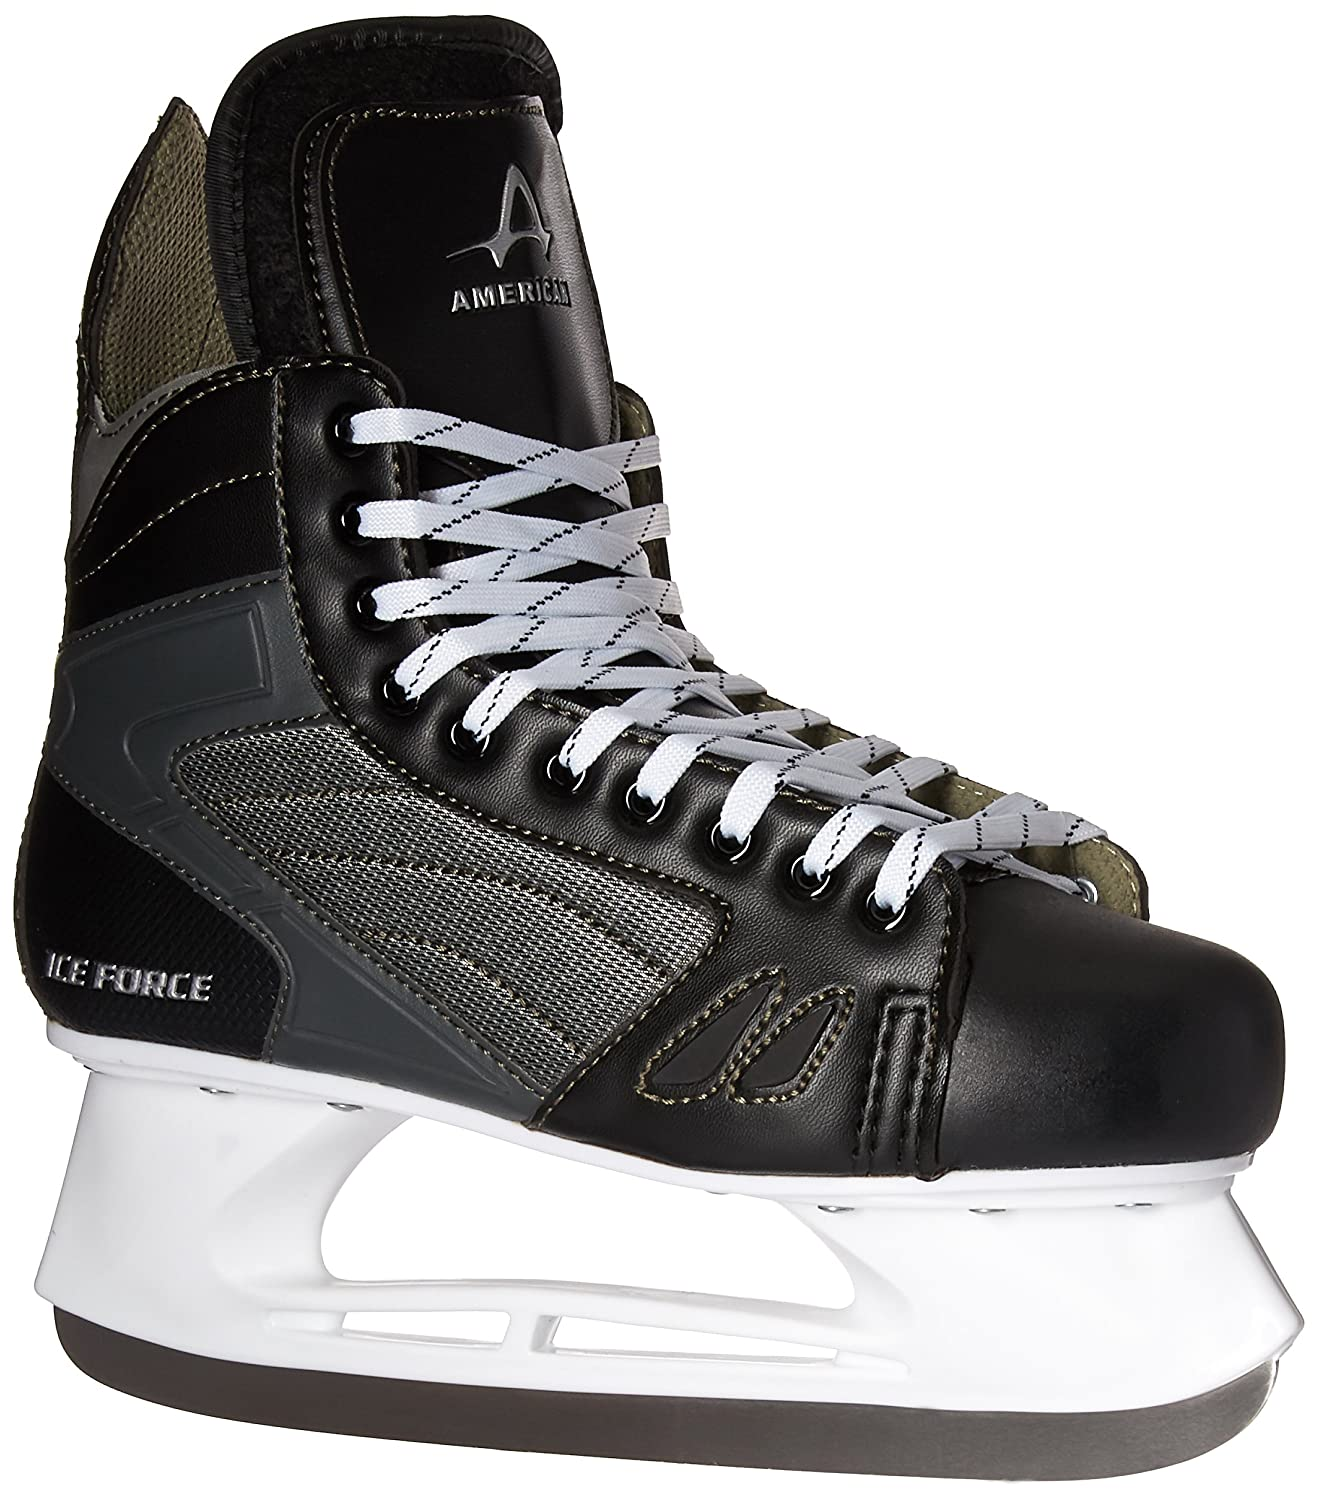 The Best Hockey Skates 4